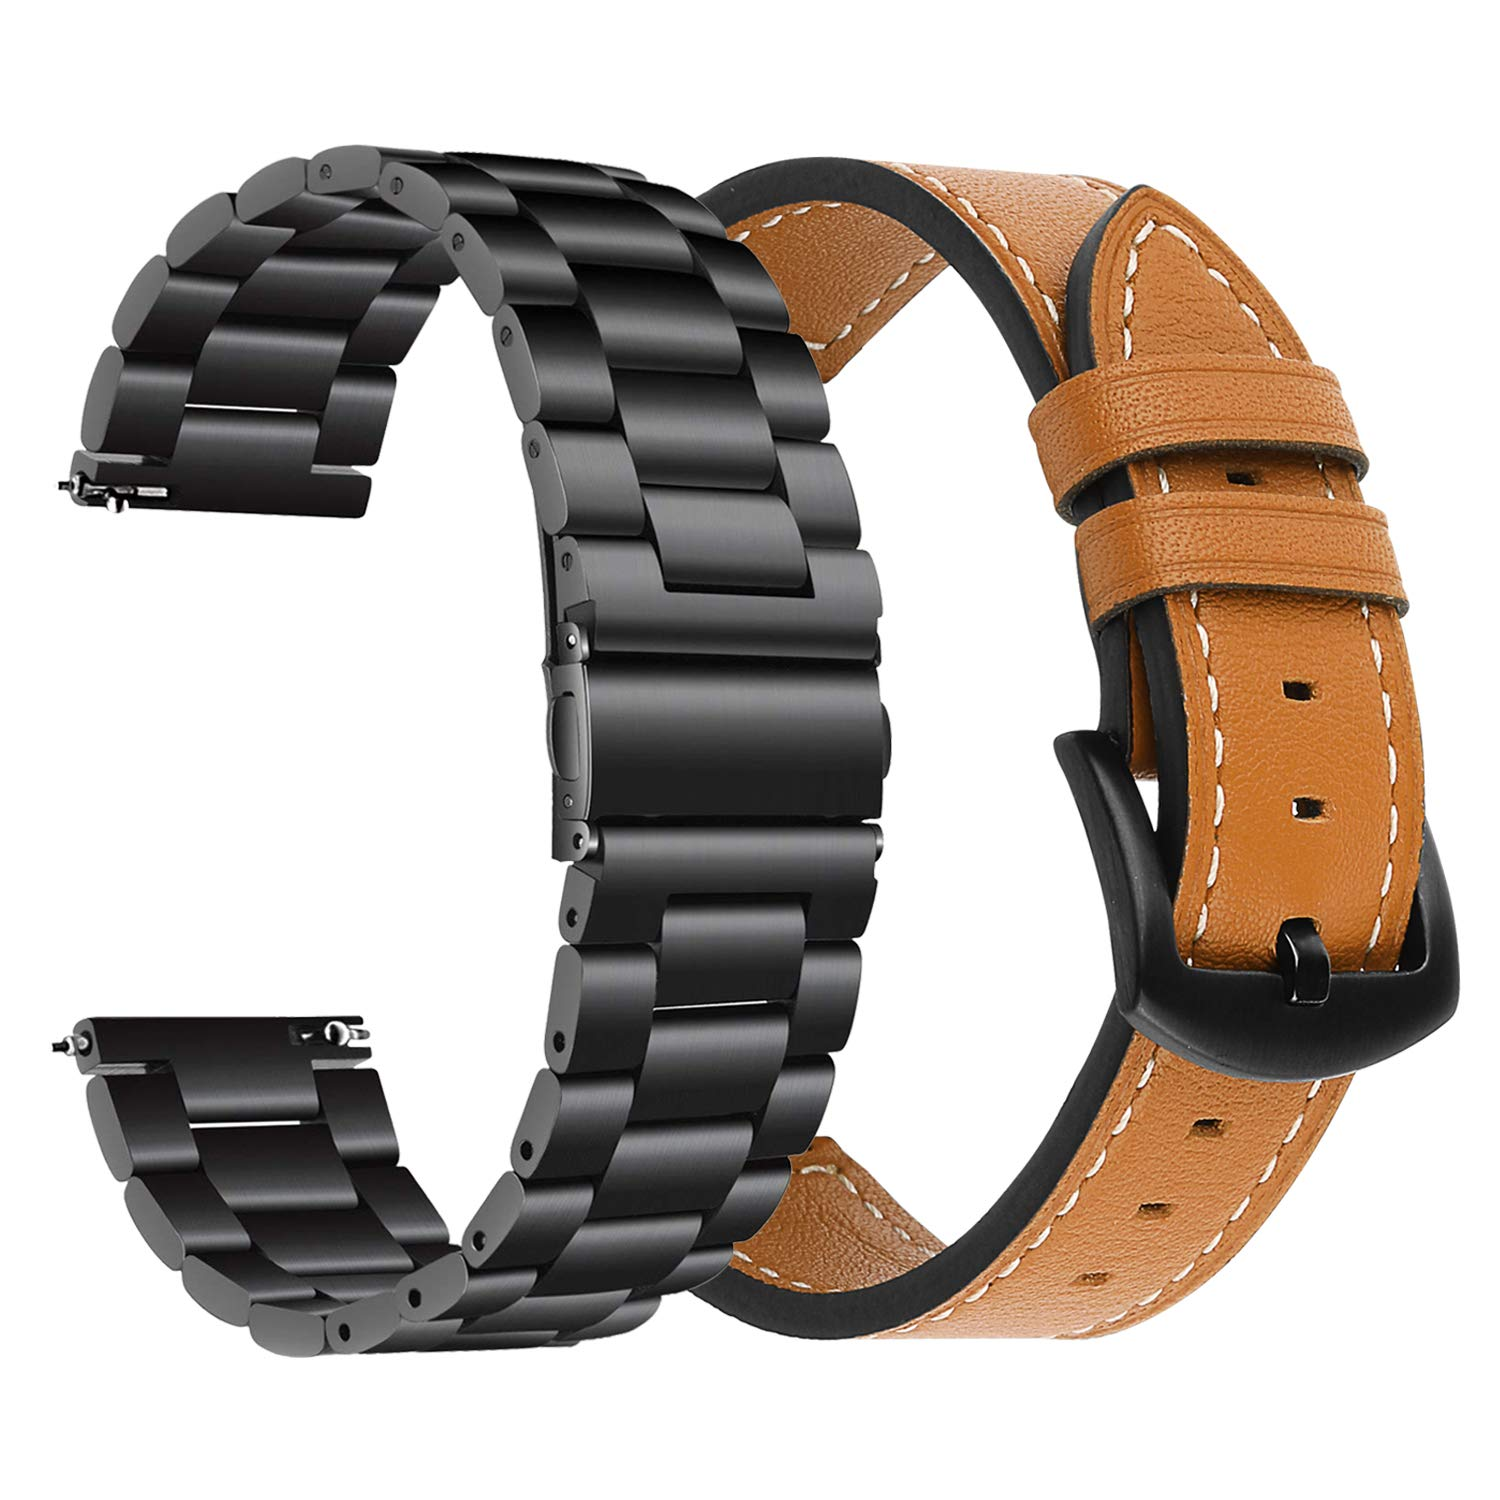 Gear S3/Galaxy Watch 46mm Bands, iWonow 22mm Quick Release Genuine Leather Watch Band Stainless Steel Strap Replacement for Samsung Gear S3 ...